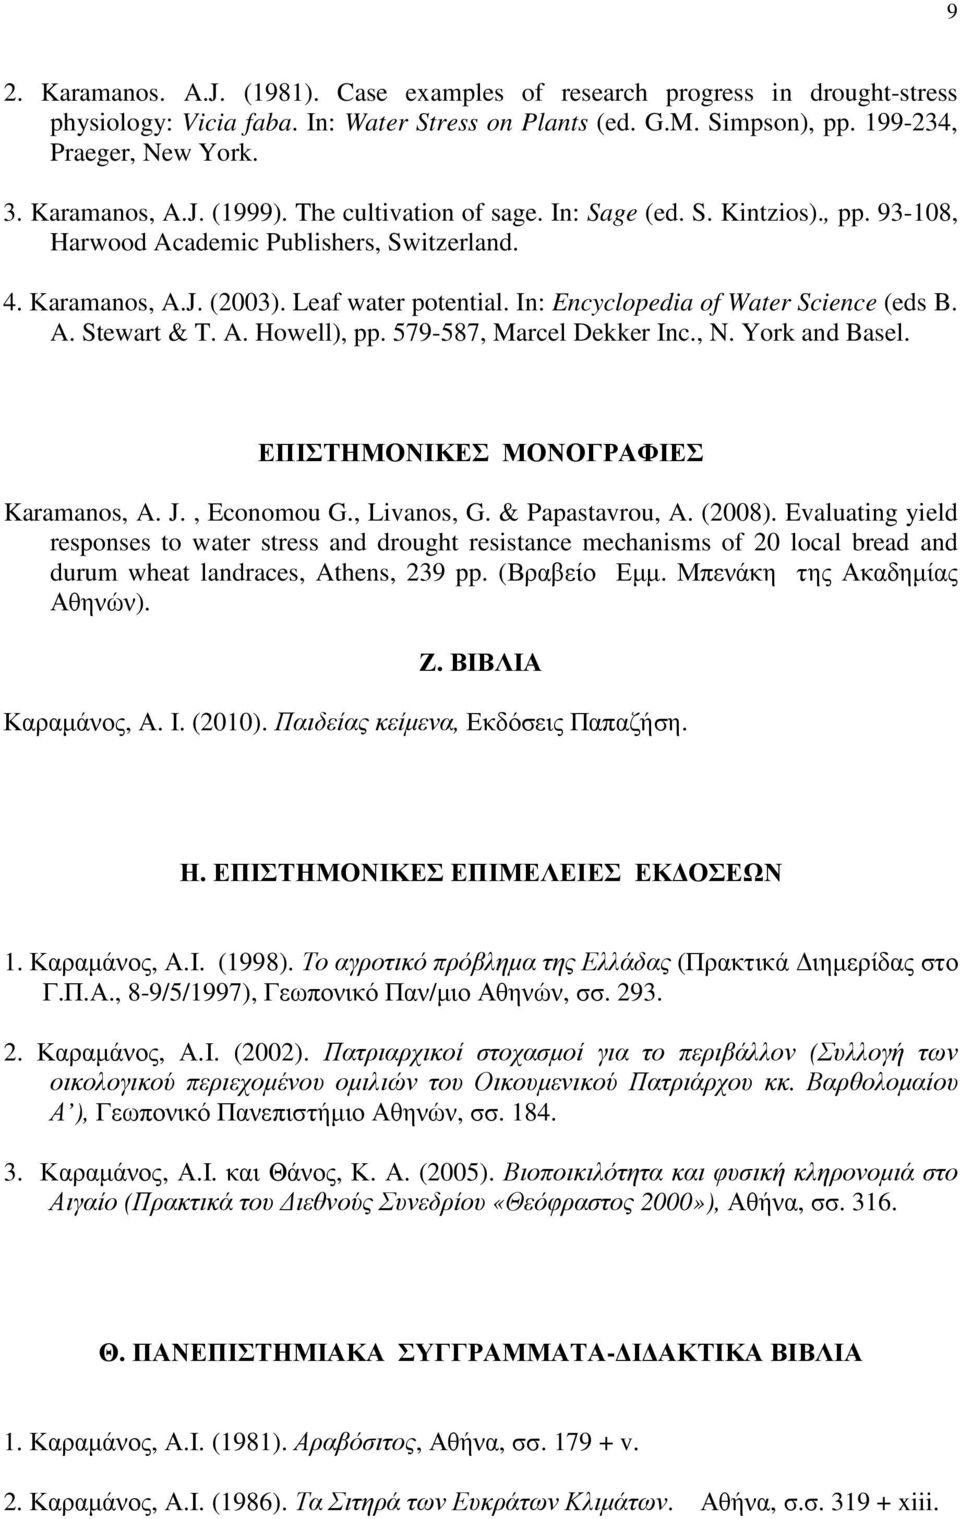 In: Encyclopedia of Water Science (eds B. A. Stewart & T. A. Howell), pp. 579-587, Marcel Dekker Inc., N. York and Basel. ΕΠΙΣΤΗΜΟΝΙΚΕΣ ΜΟΝΟΓΡΑΦΙΕΣ Karamanos, A. J., Economou G., Livanos, G.